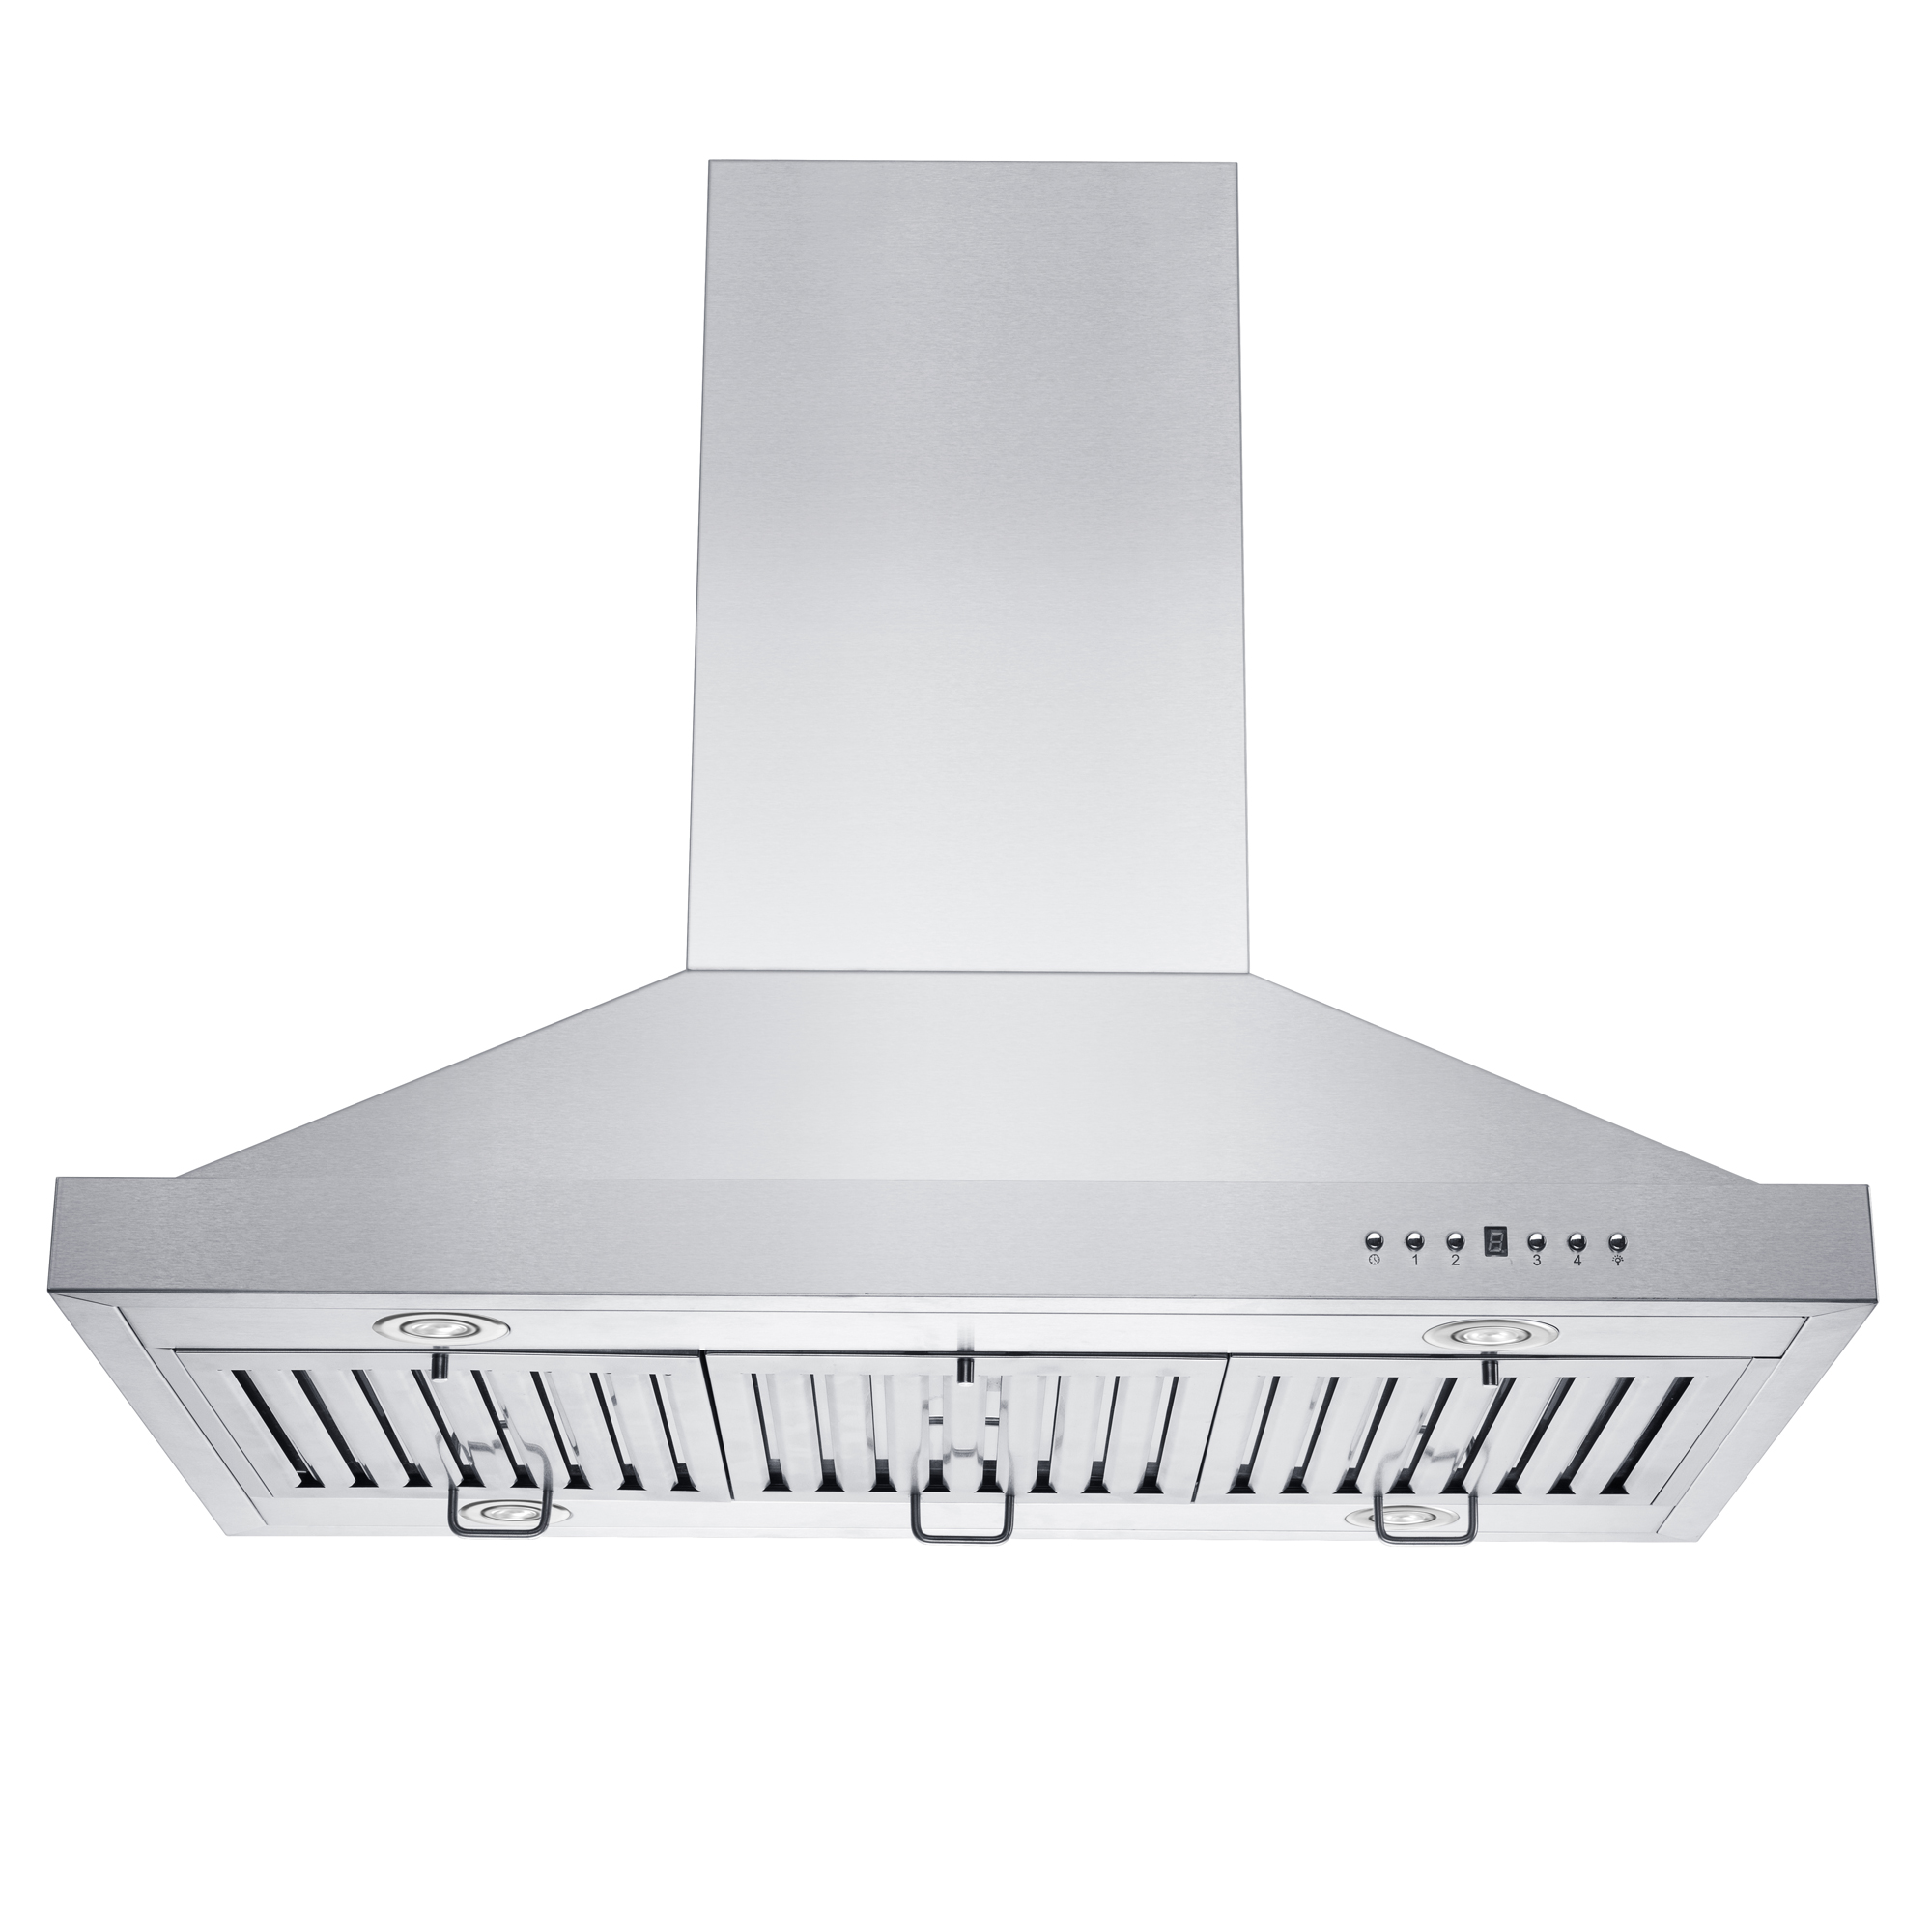 zline-stainless-steel-island-range-hood-GL2i-new-under.jpg